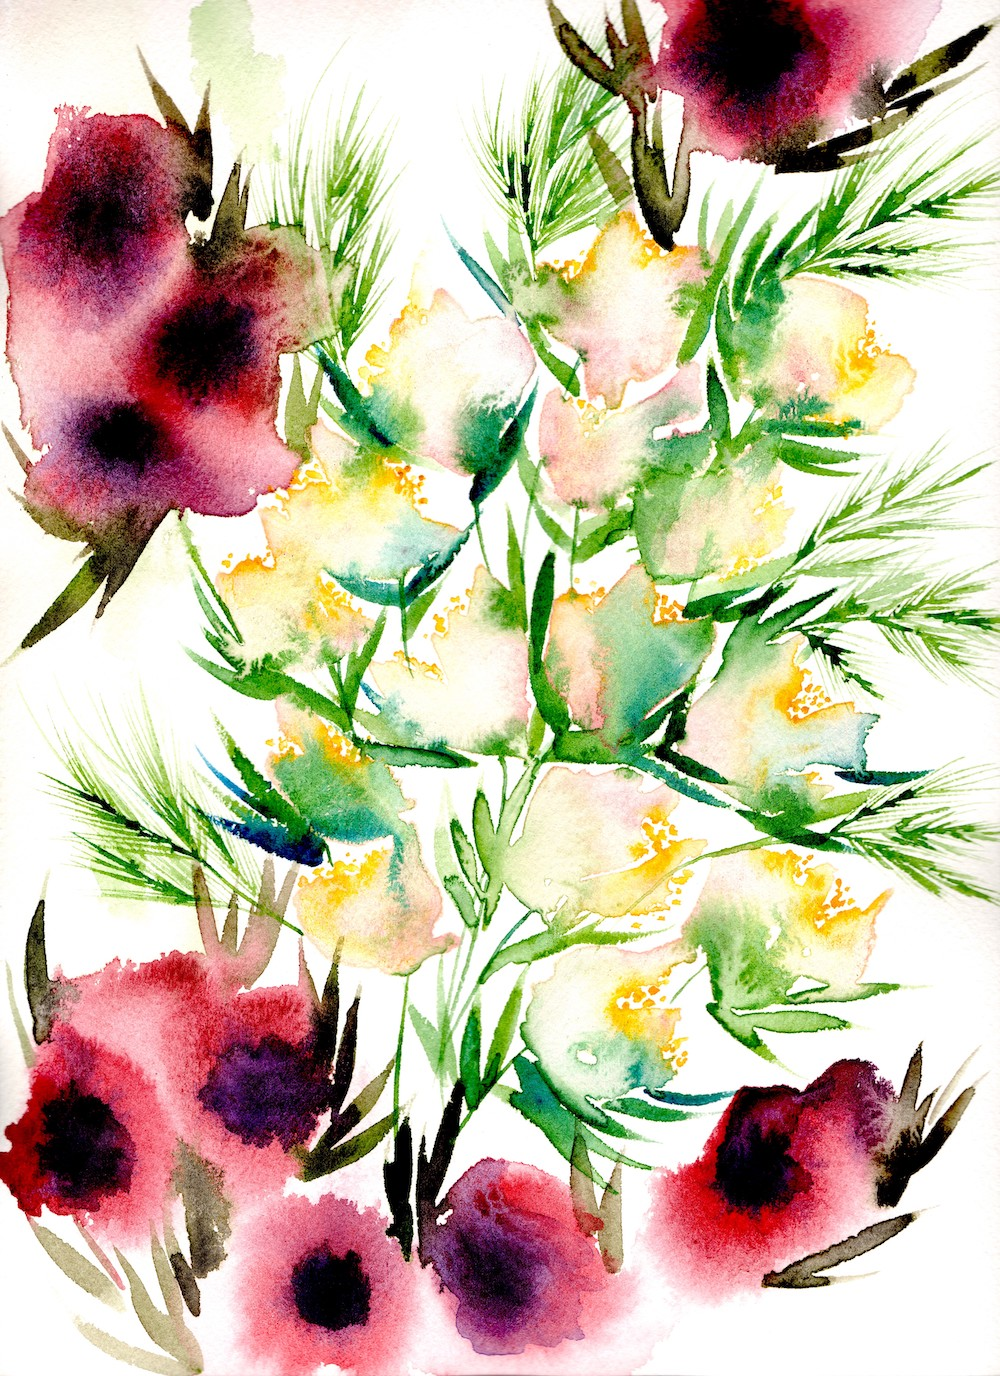 Flower watercolour artwork with blush, yellow and bright pink